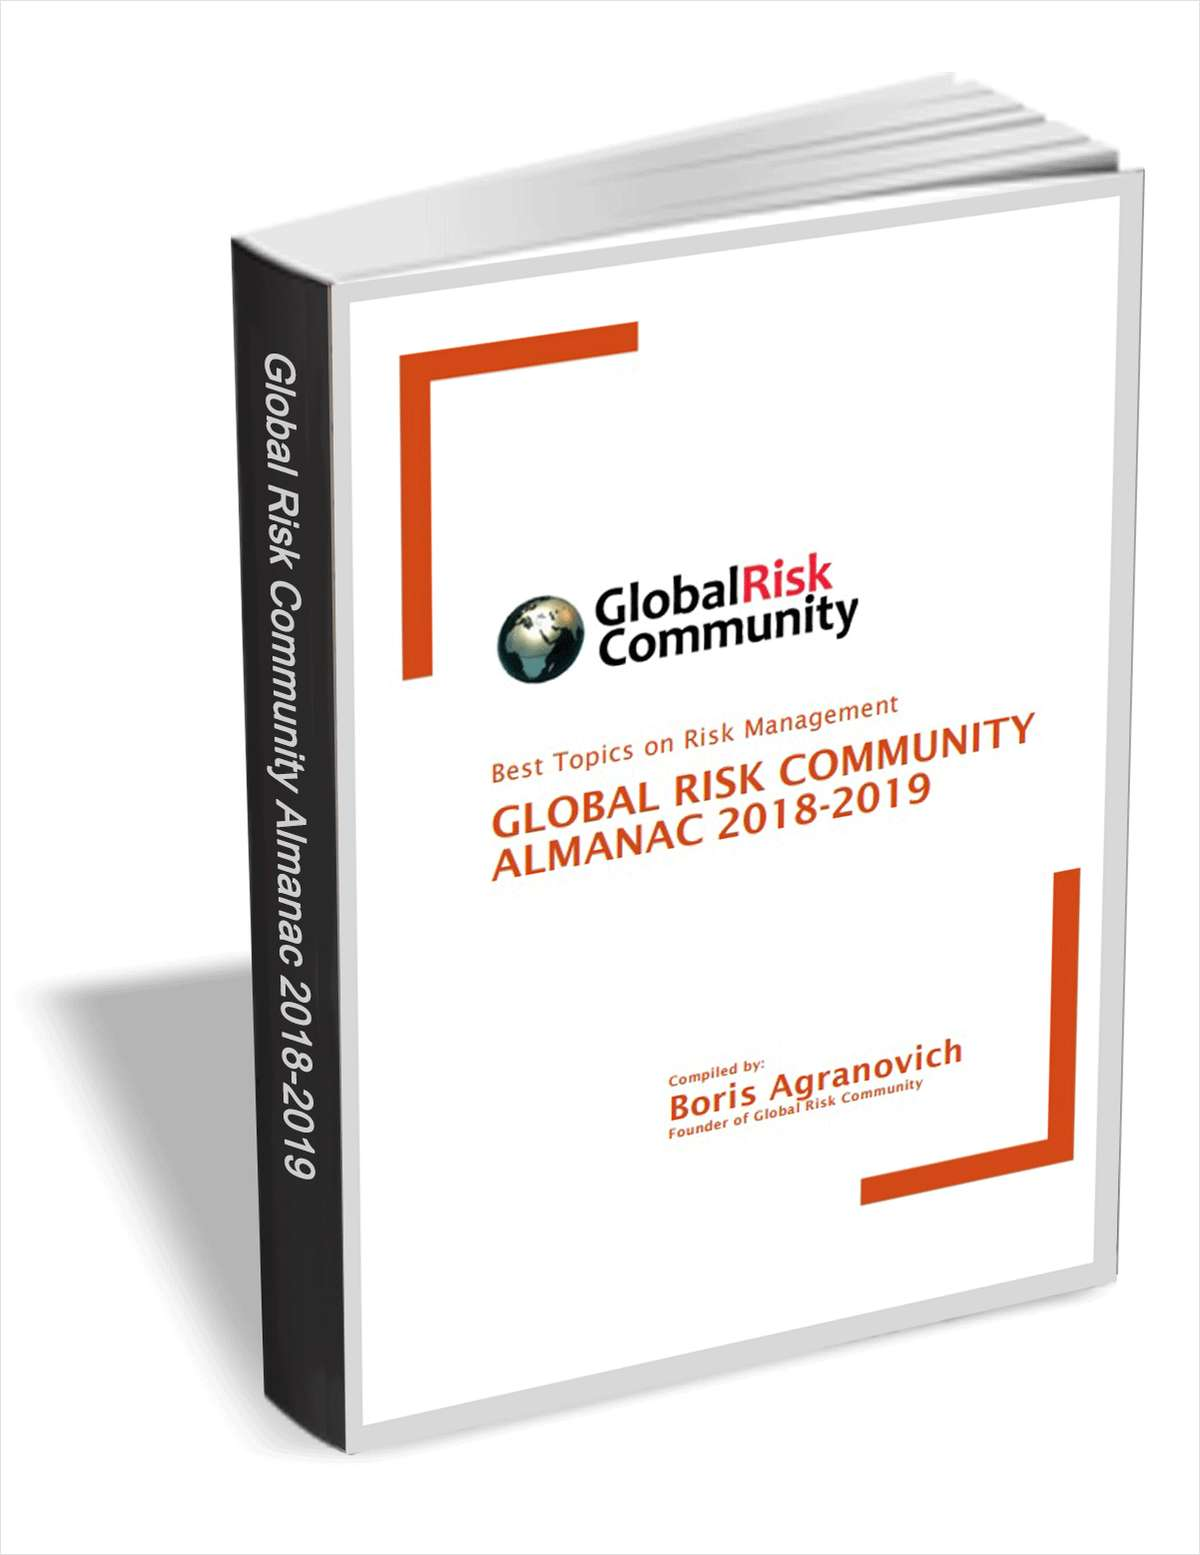 Best Topics on Risk Management - Global Risk Community Almanac 2018-2019